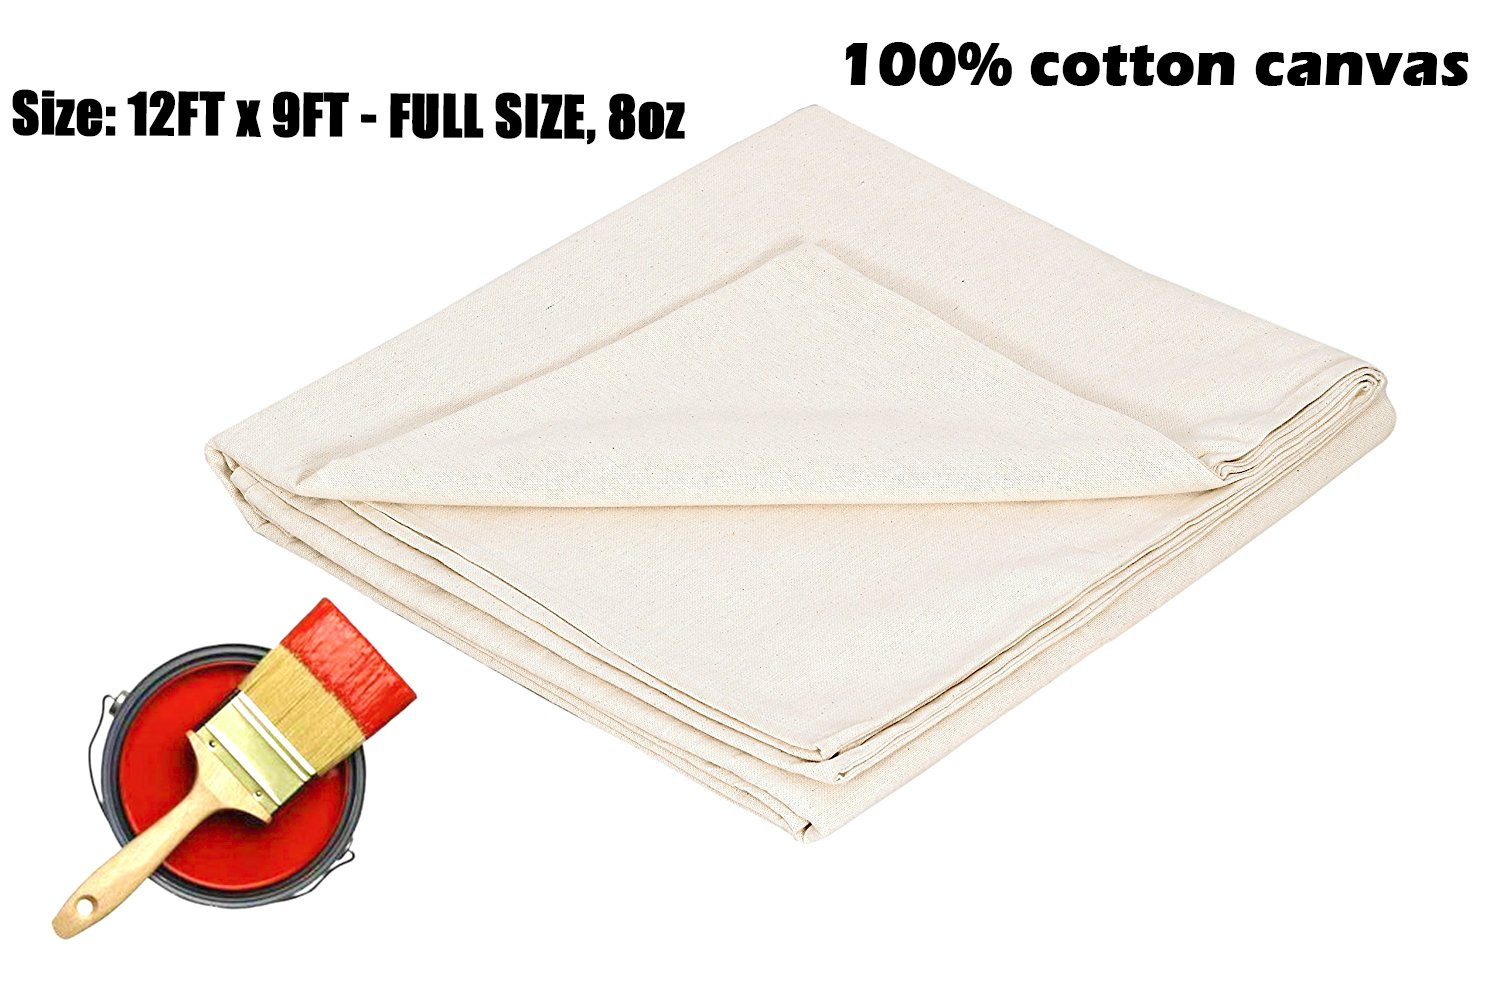 12 x 9 All Purpose Canvas Cotton Drop Cloth | Absorbs Paint Scatter | 8 oz - Anoma Tuff Sri Subha Textile